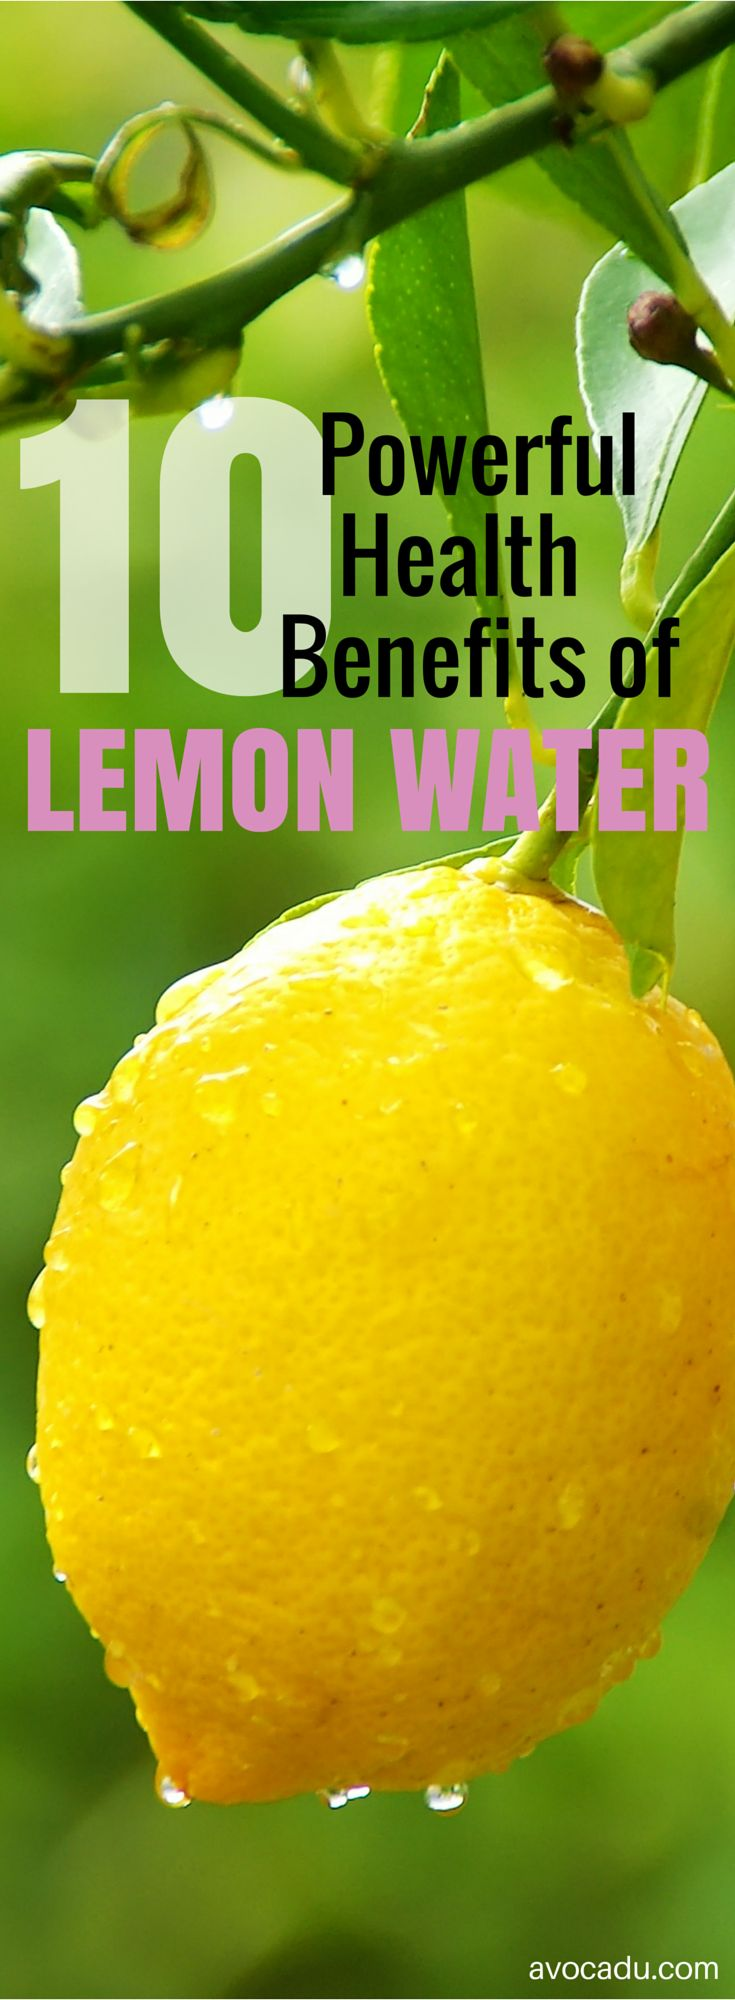 10 Powerful Benefits of Lemon Water | Detox | http://avocadu.com/the-detoxifying-powers-of-lemons/